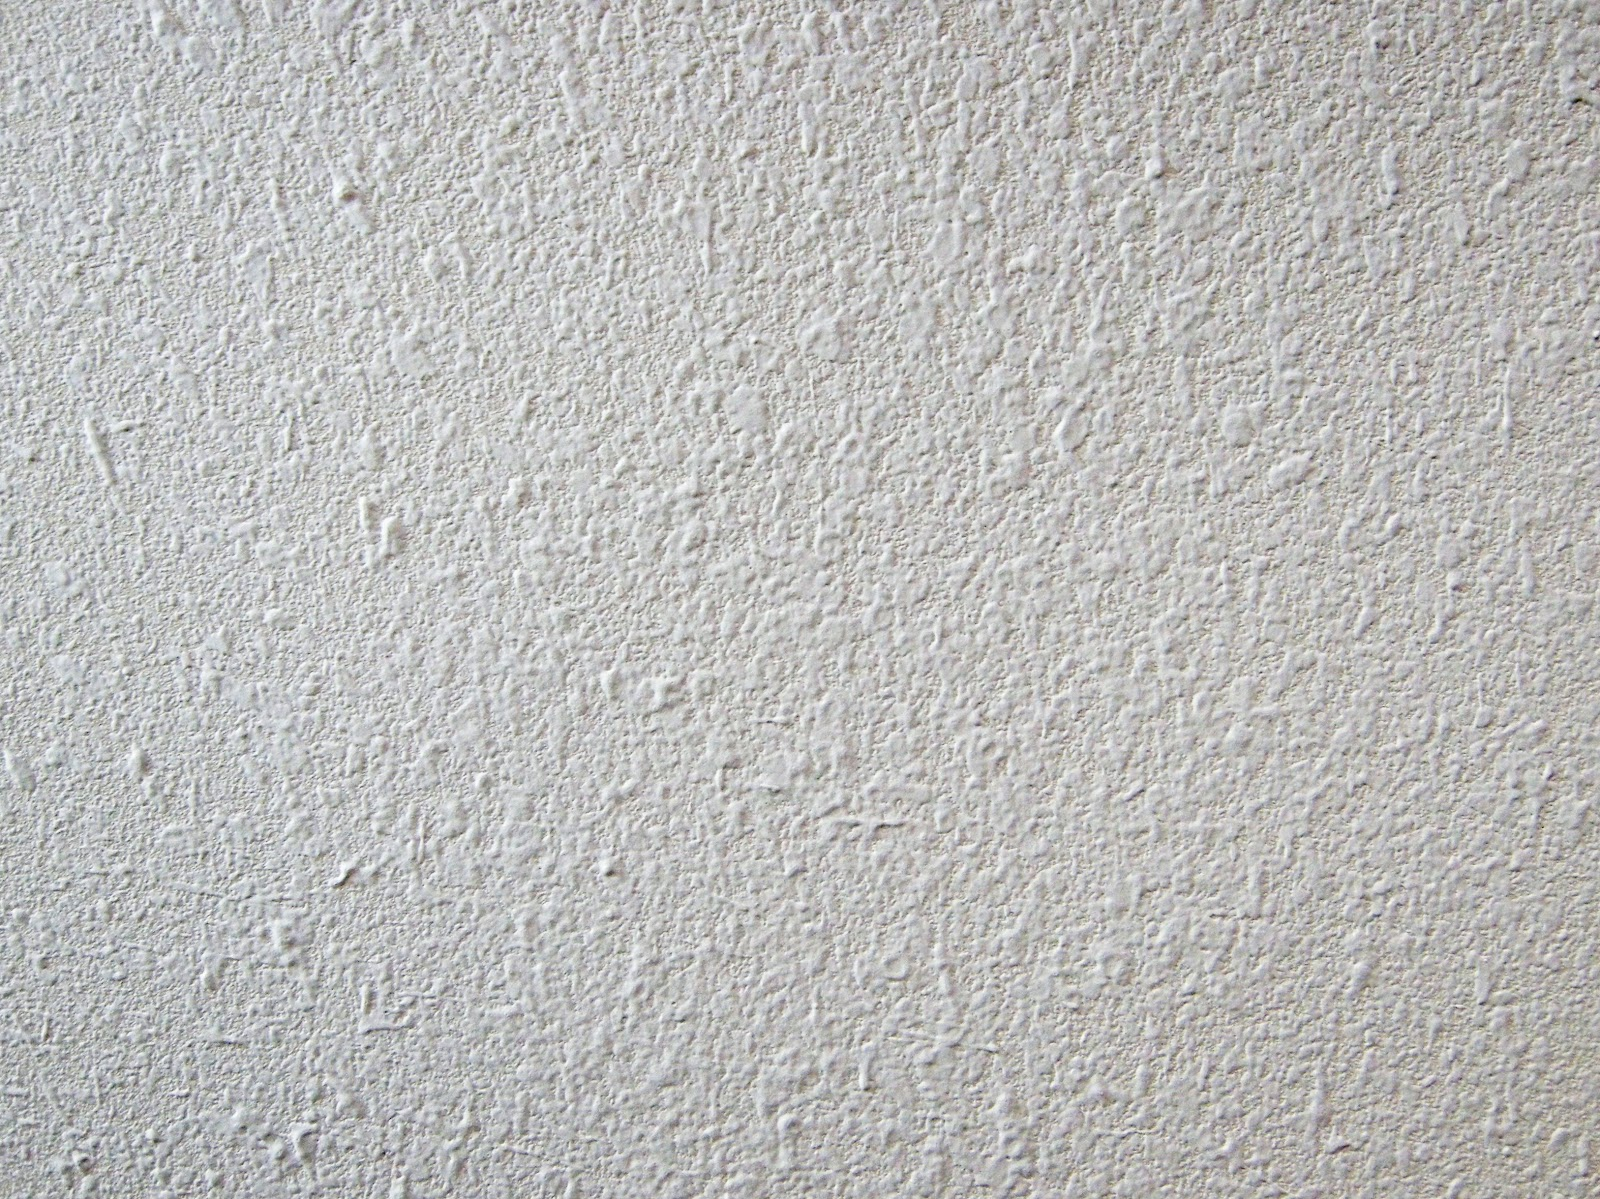 Wall texture techniques bing images for Wall texture styles